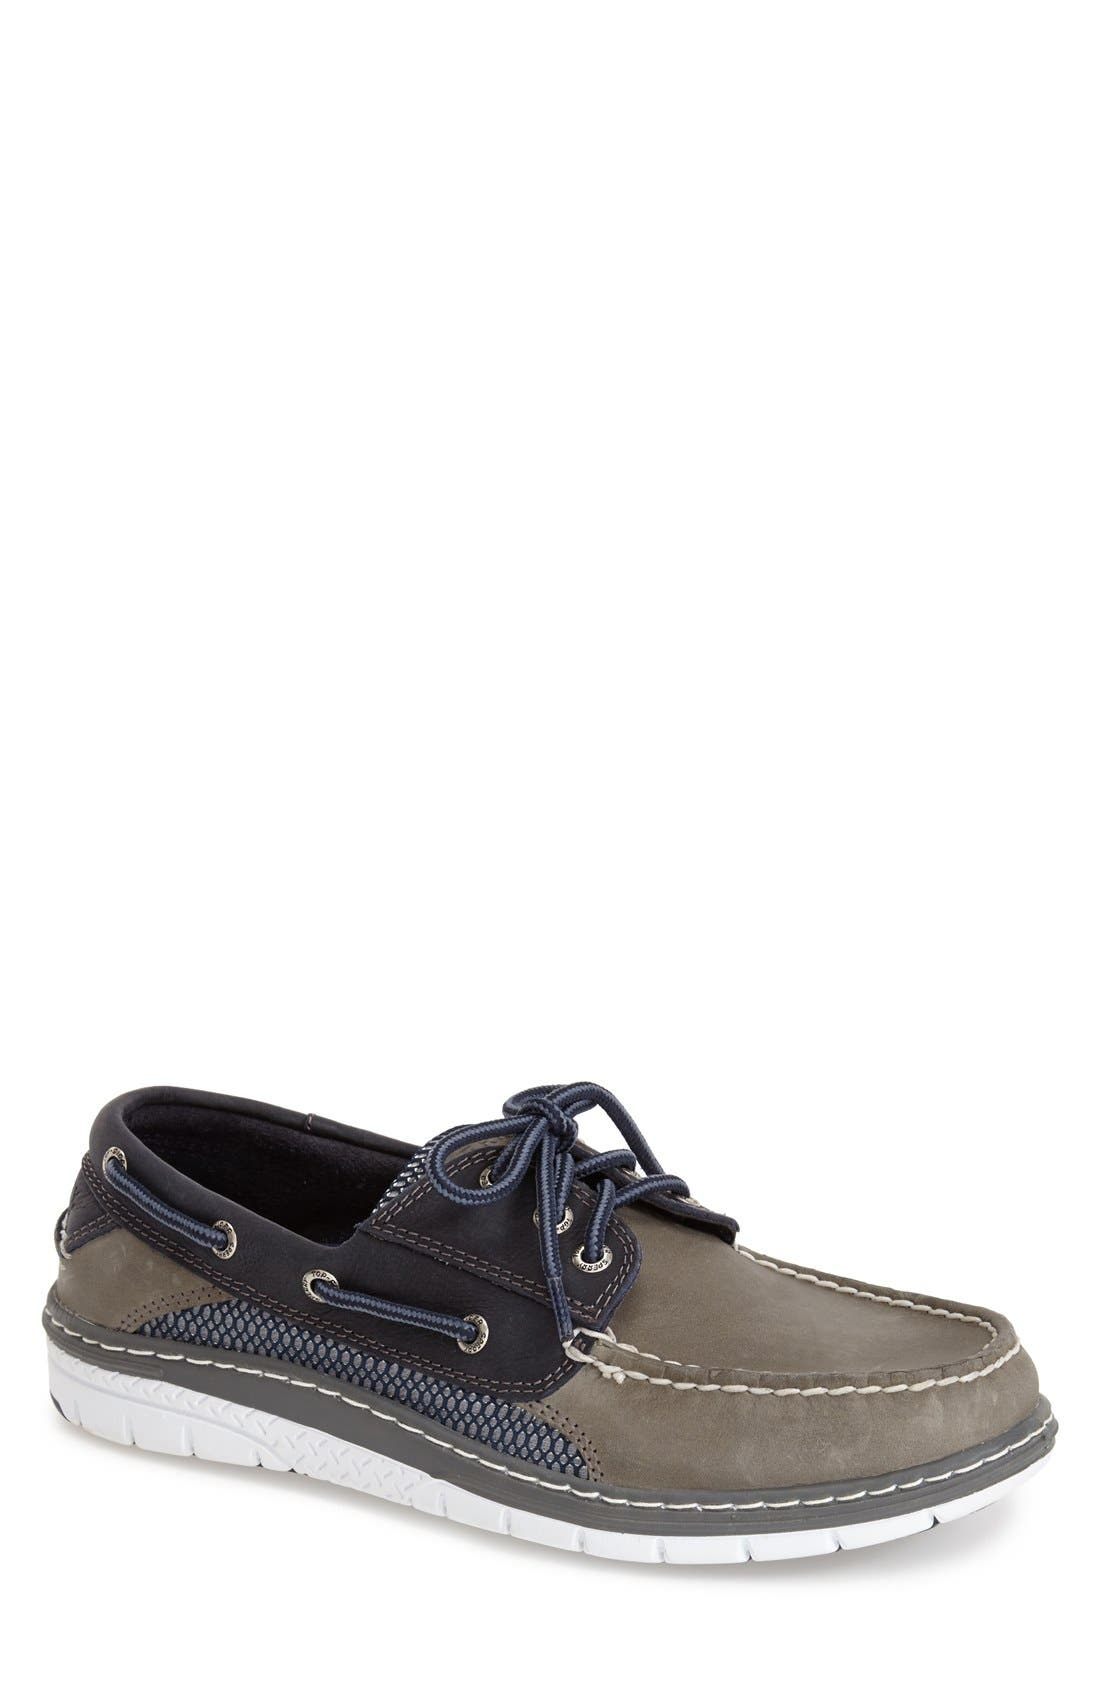 'Billfish Ultralite' Boat Shoe,                             Main thumbnail 7, color,